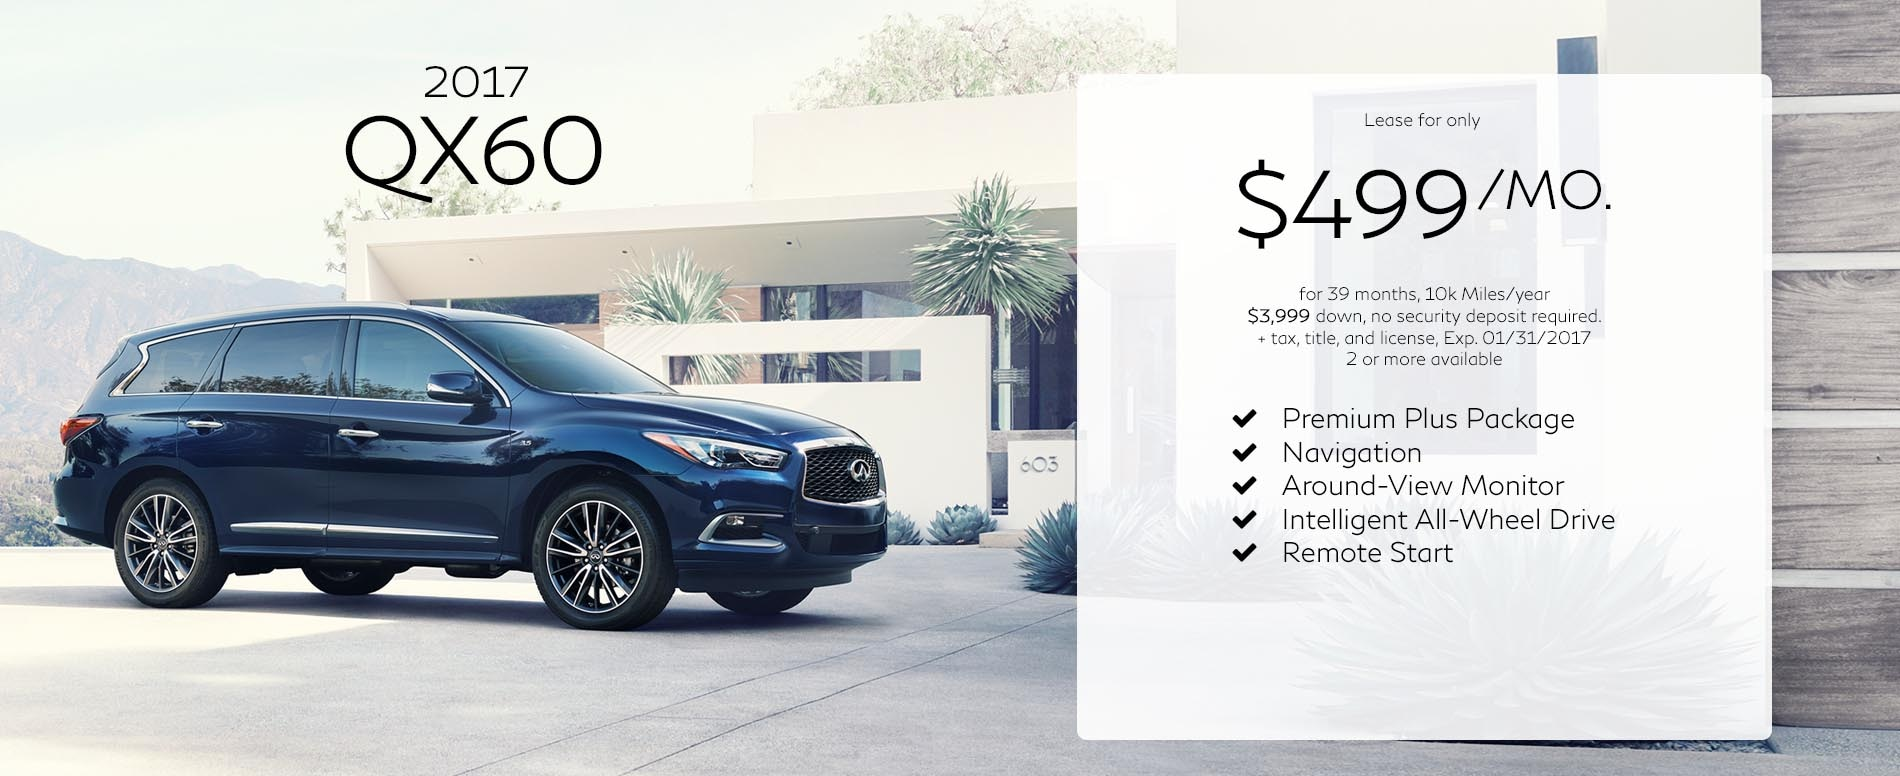 Lease a 2017 Infiniti QX60 for $499 per month with $3,999 due at signing